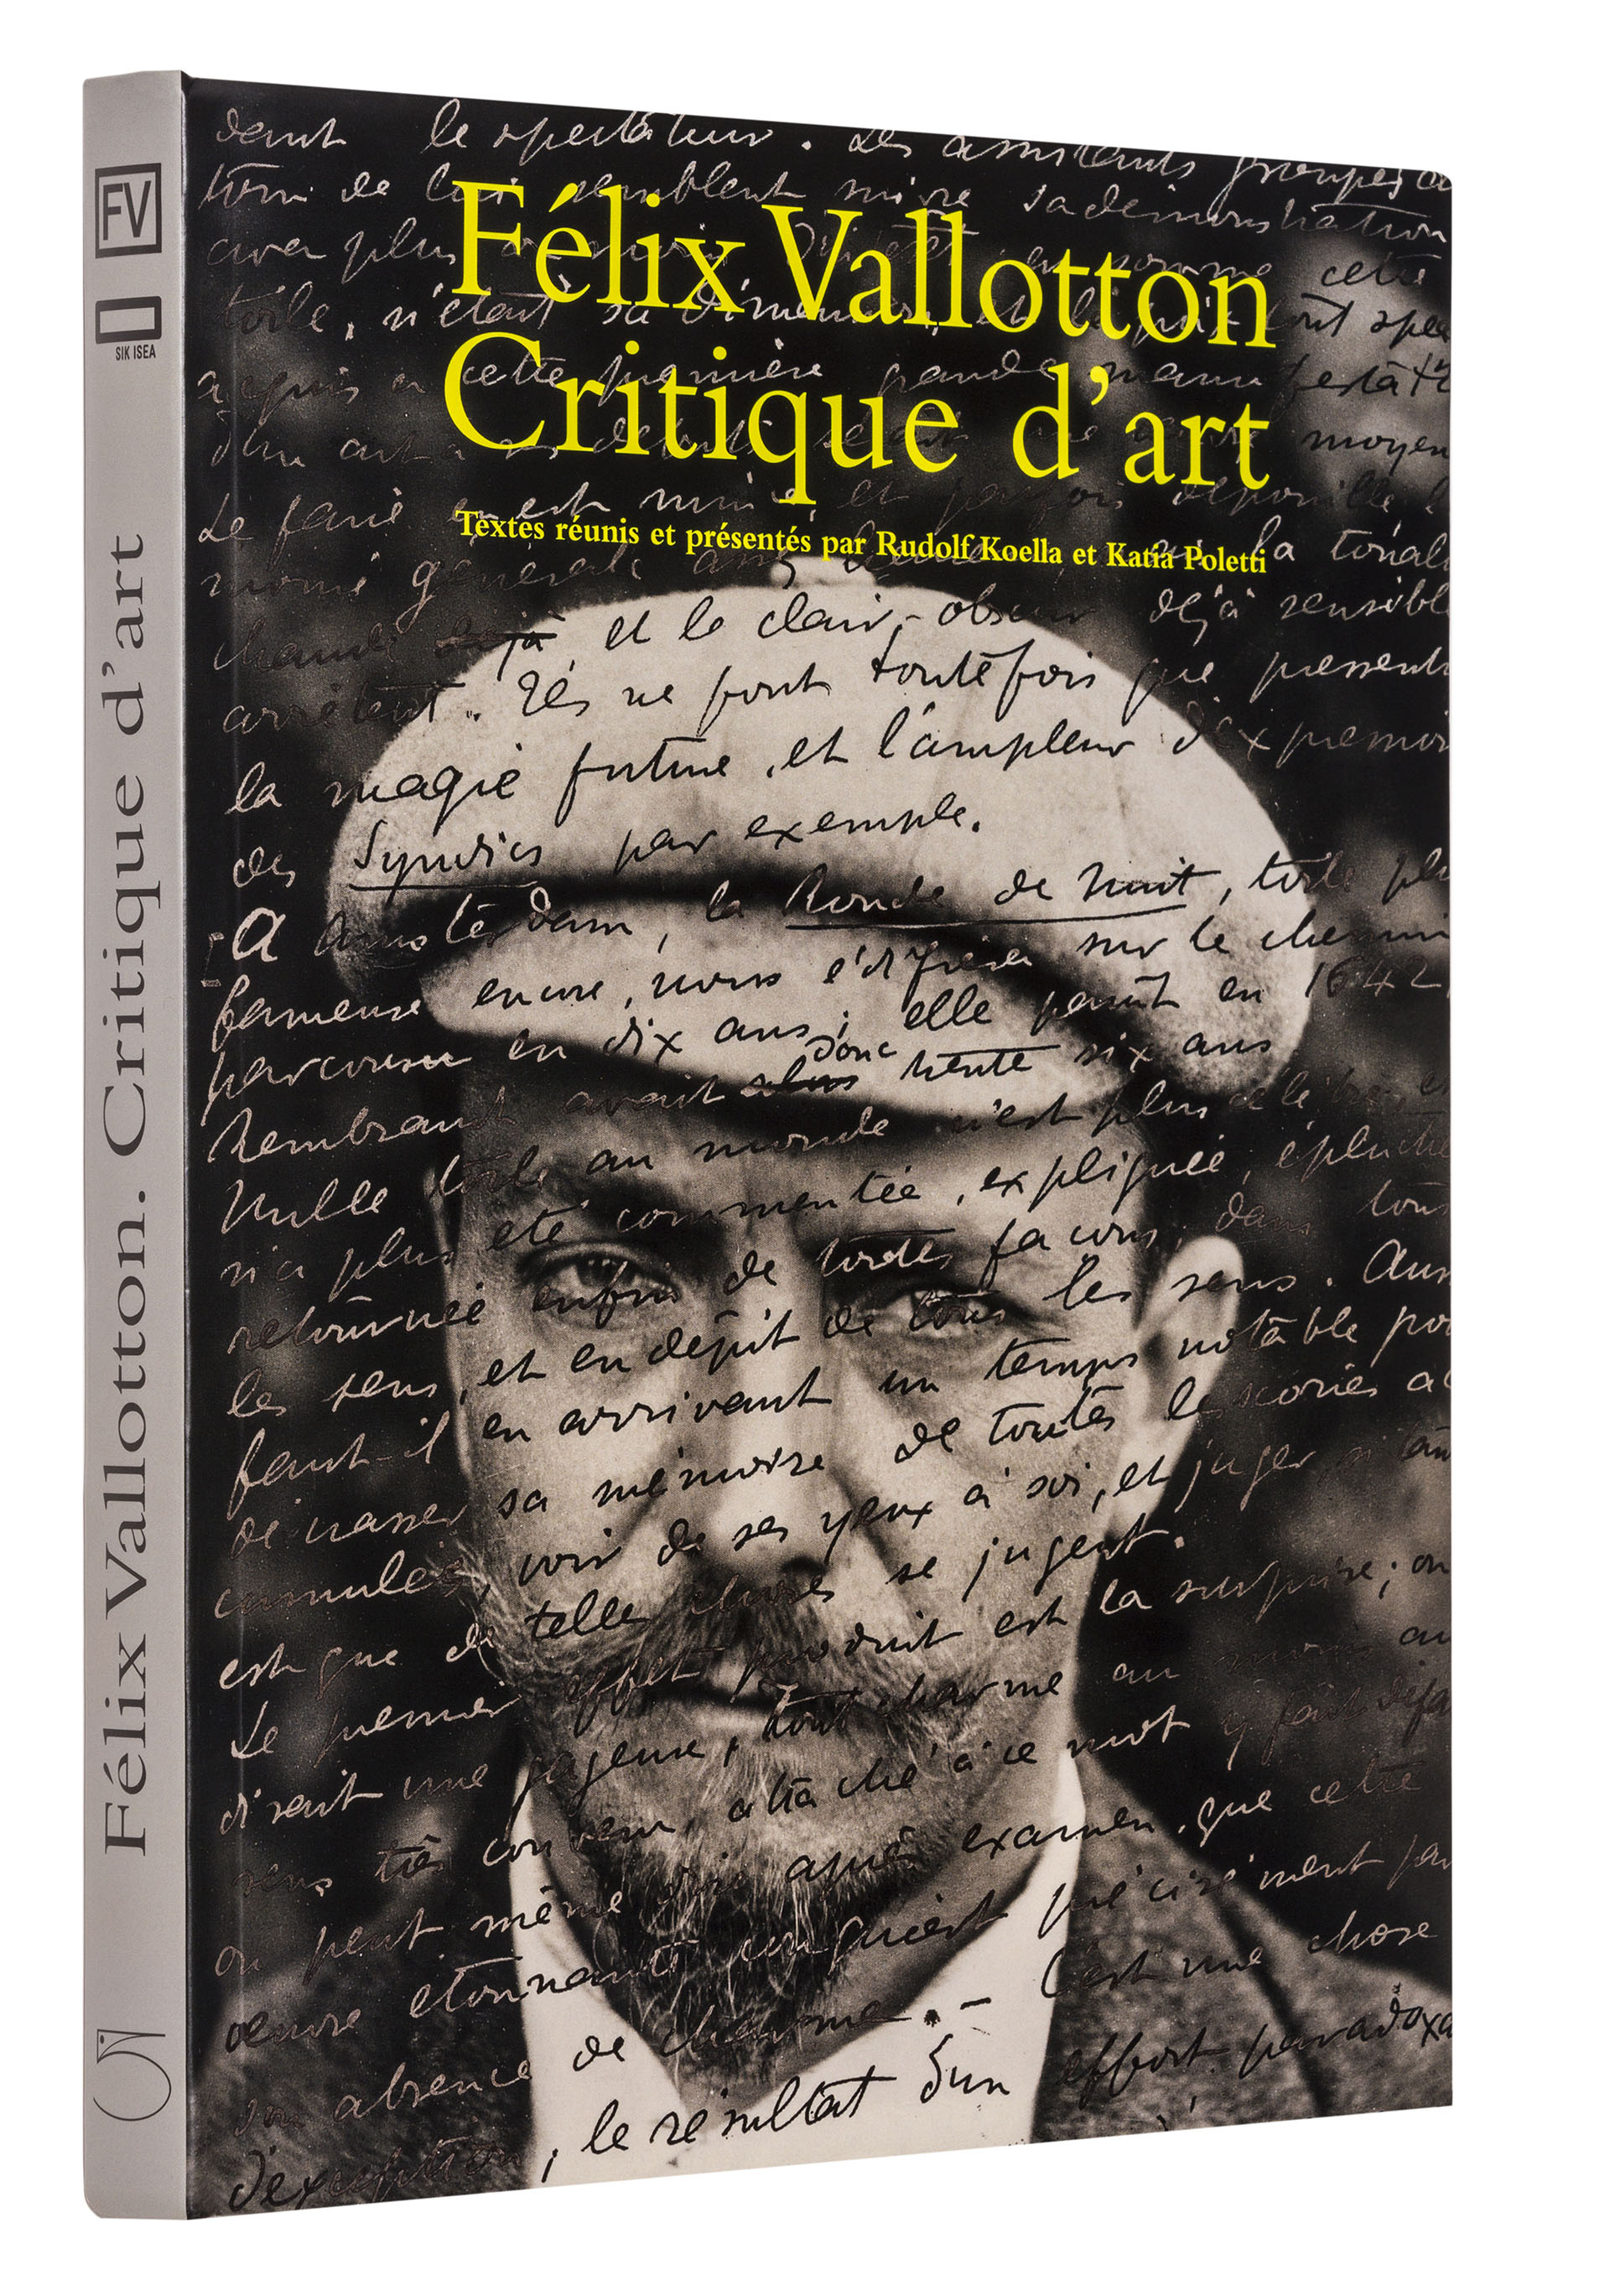 Félix Vallotton. Critique d'art - 5 Continents Editions